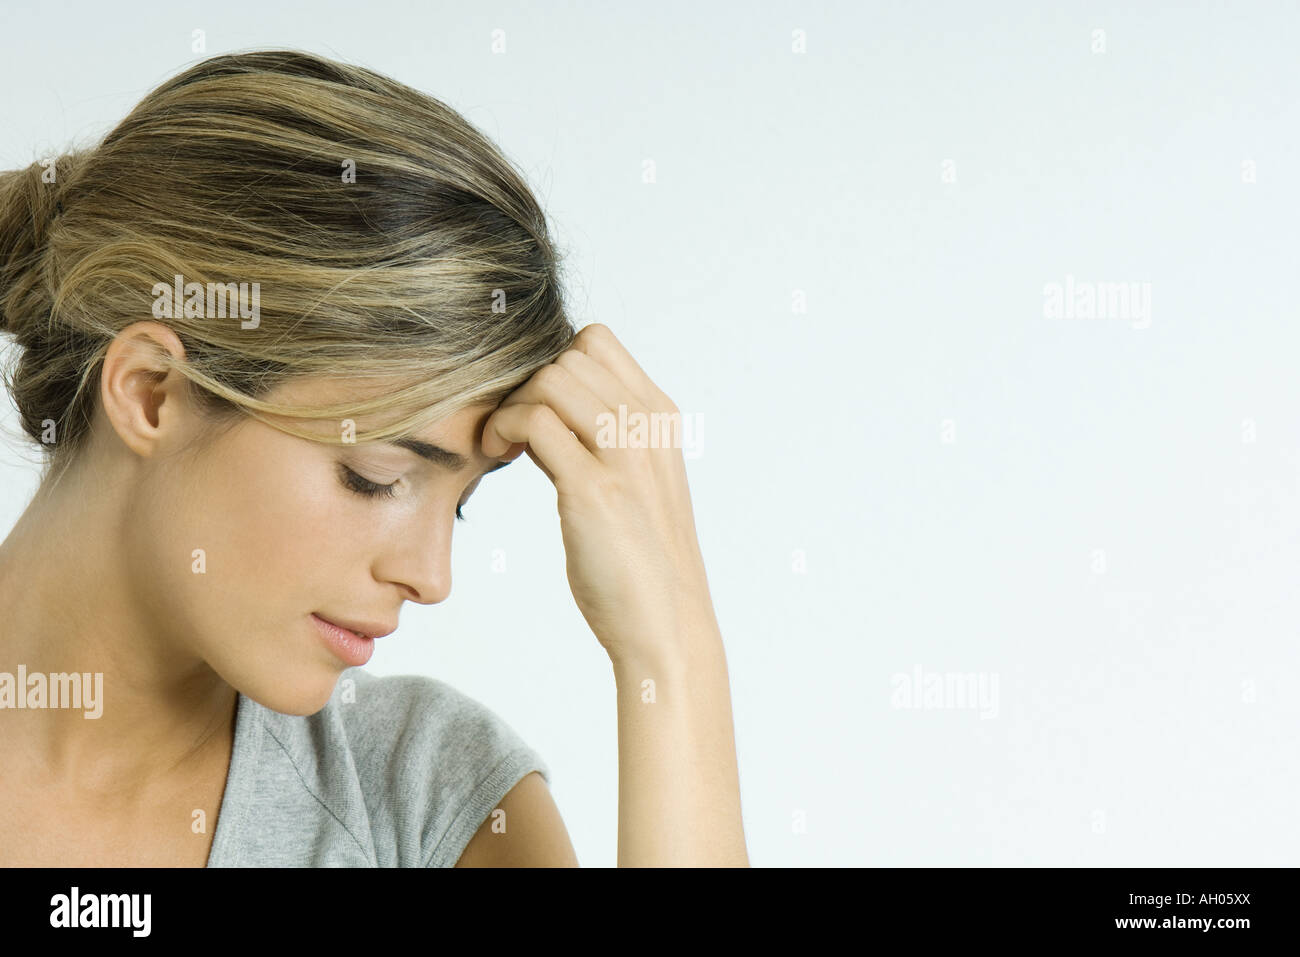 Young woman holding head, looking down, portrait - Stock Image